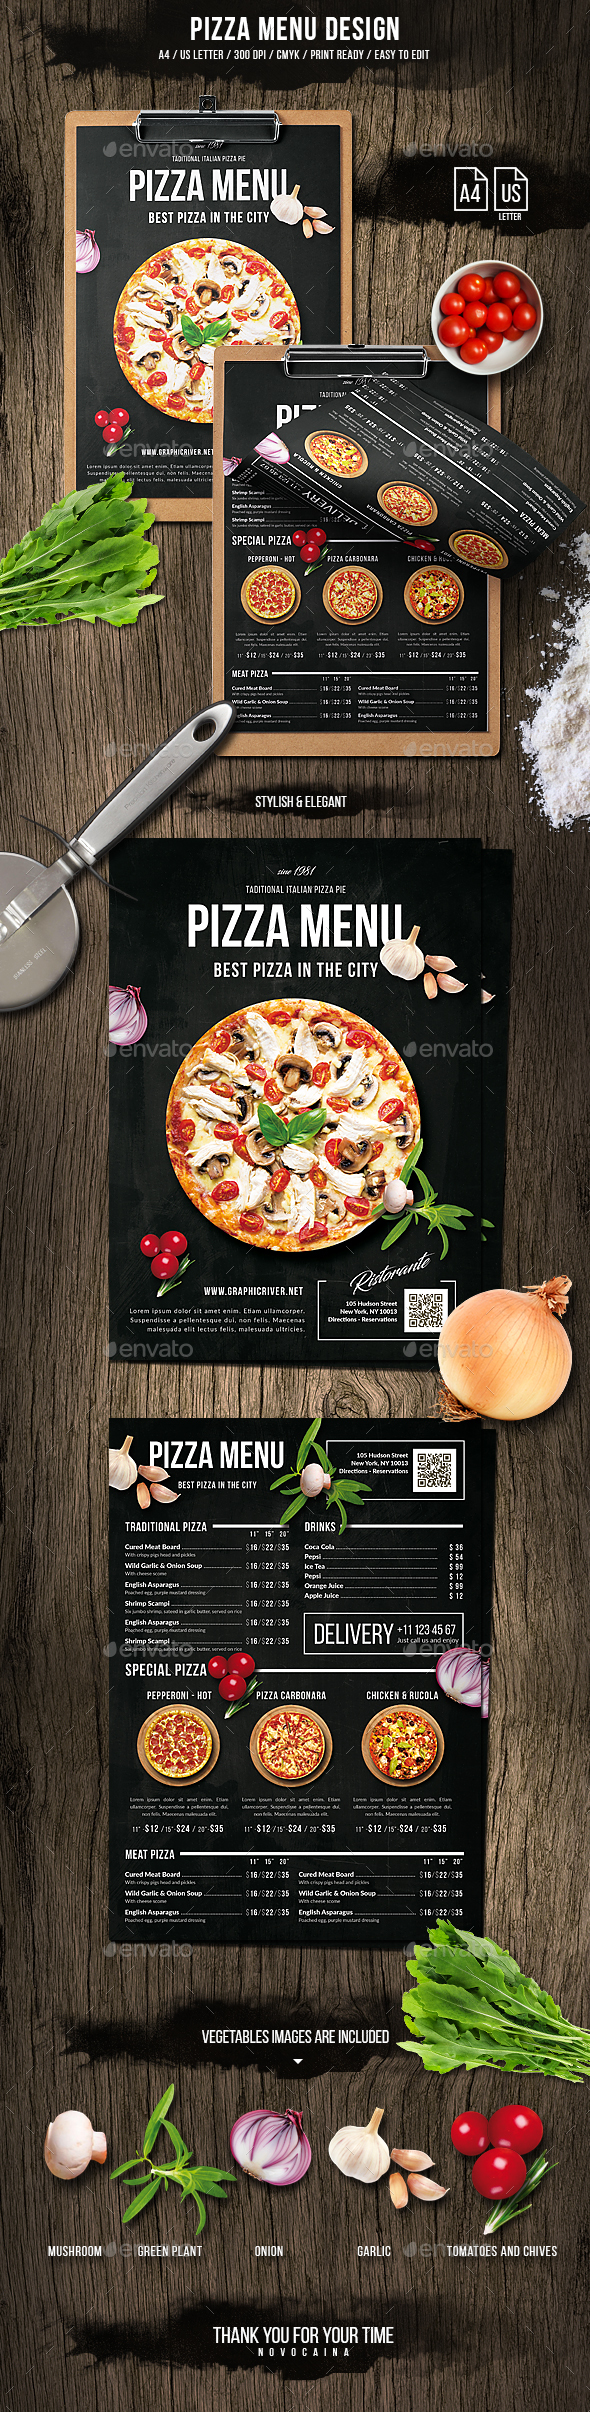 Pizza Menu Design - A4 and US Letter - Food Menus Print Templates